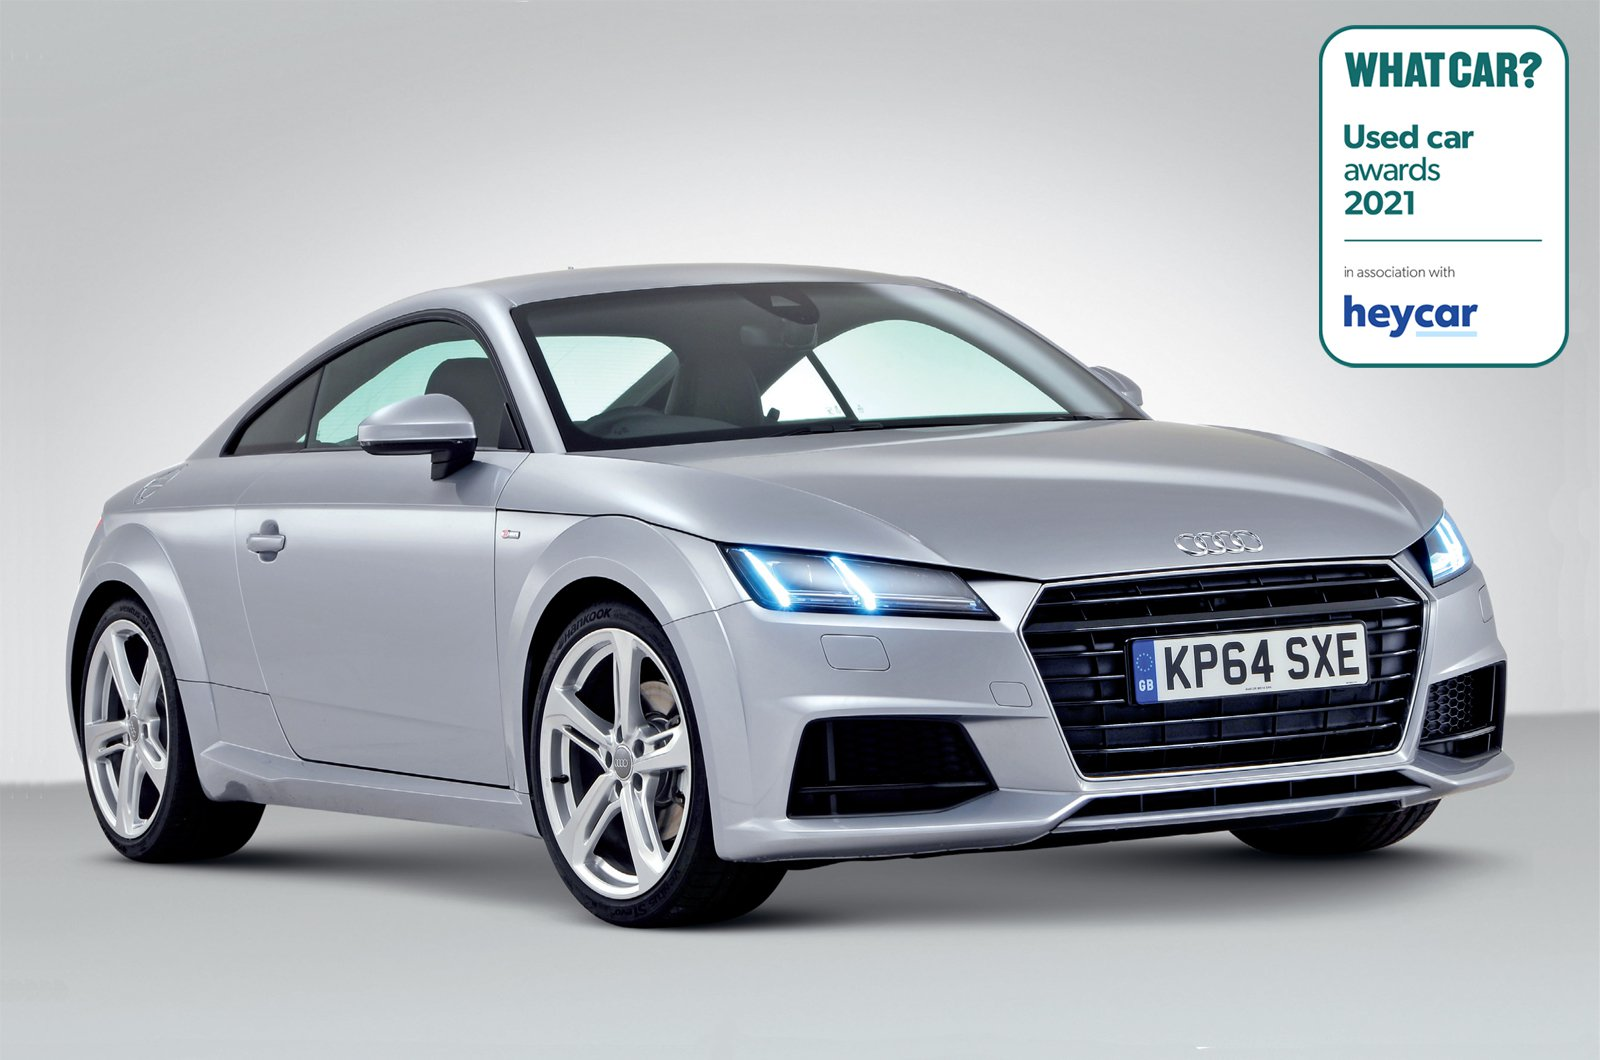 Used Car Awards 2021 - Audi TT